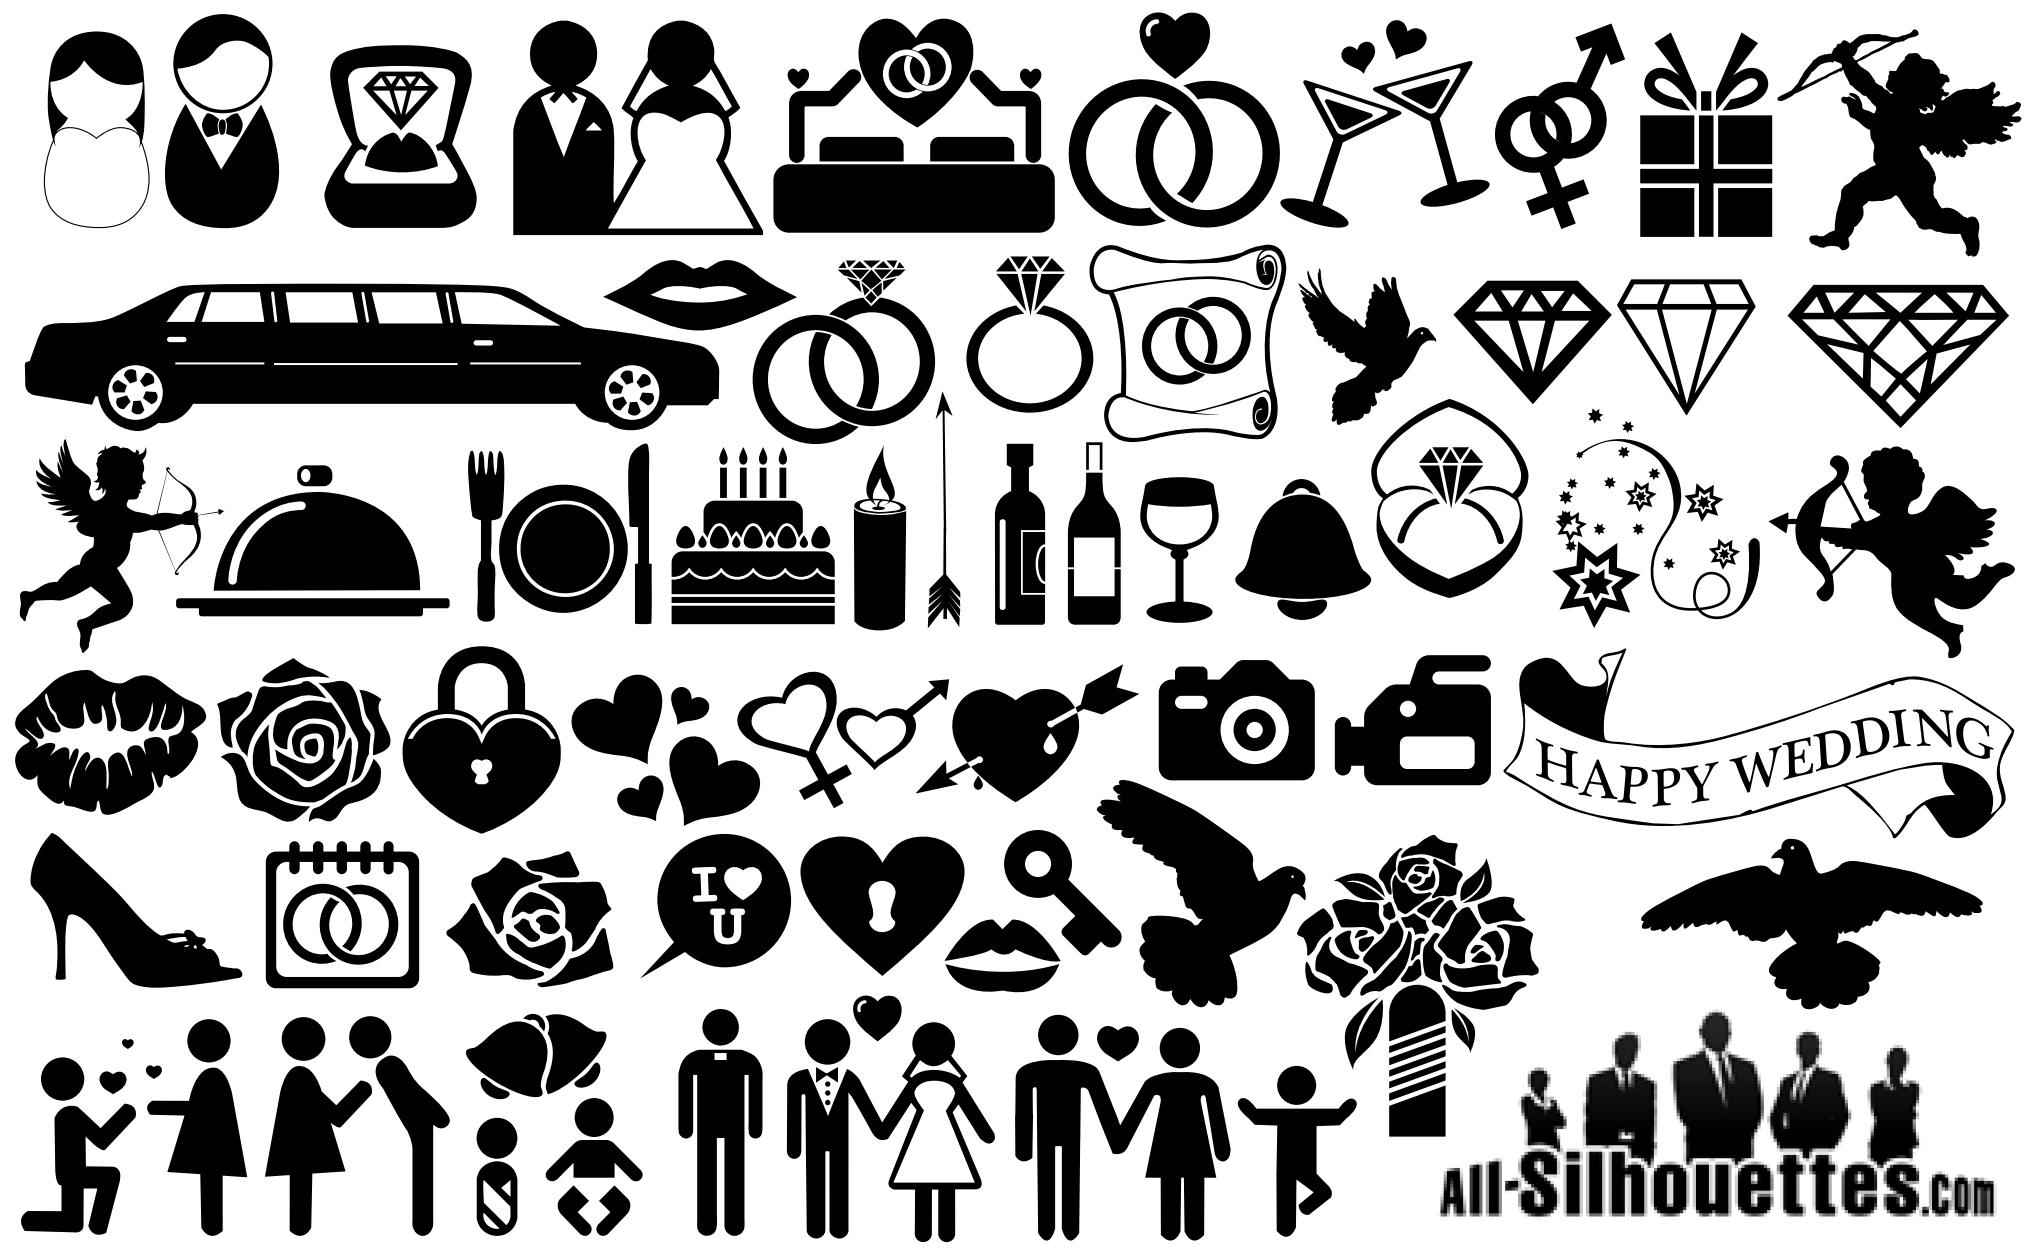 Wedding Icons Symbols Silhouette